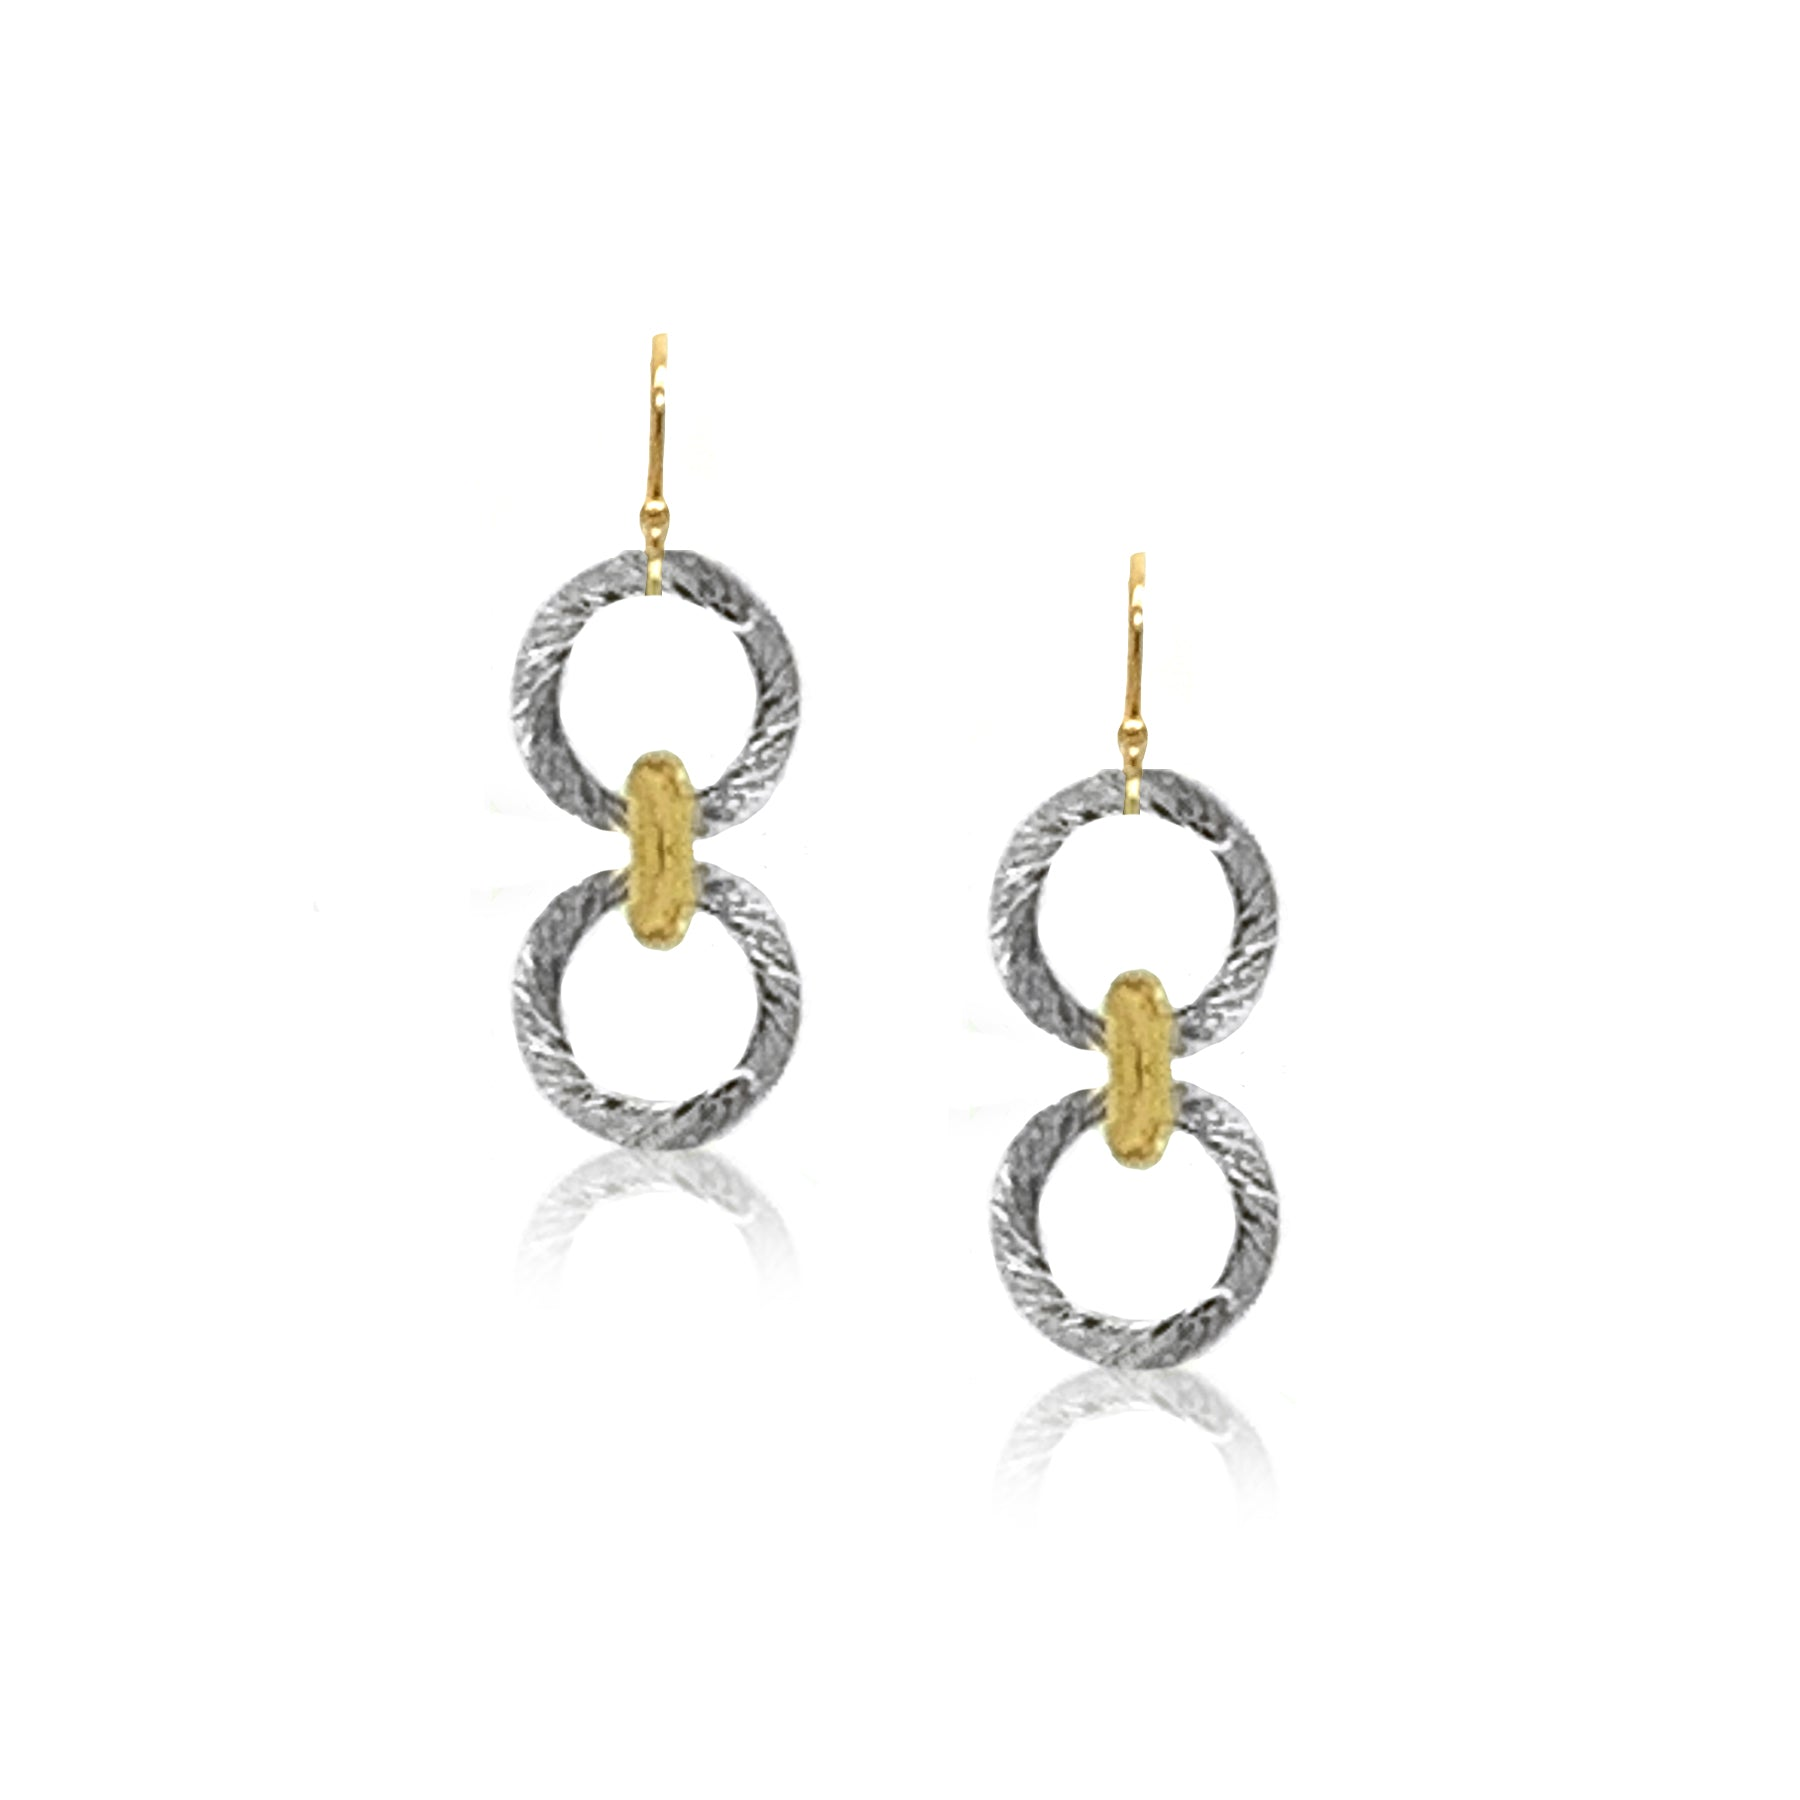 Small Connection Earring- Silver/Gold